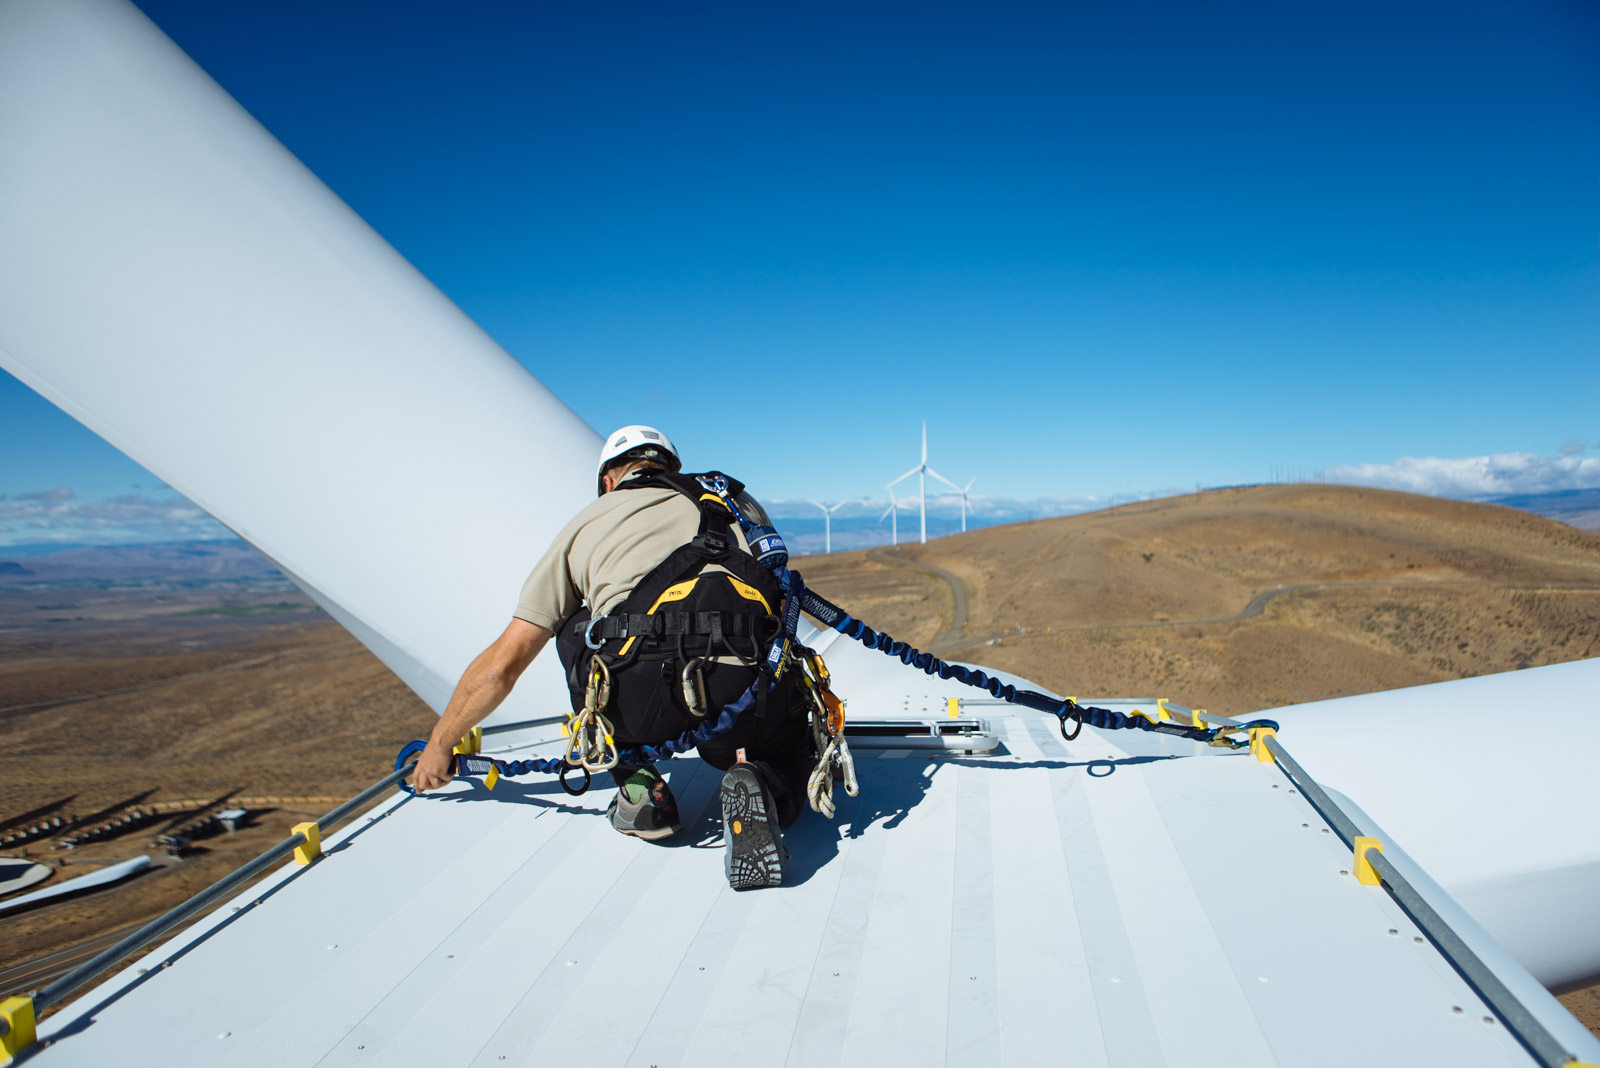 COMPETENT WIND TURBINE CLIMBER AND RESCUE REFRESHER